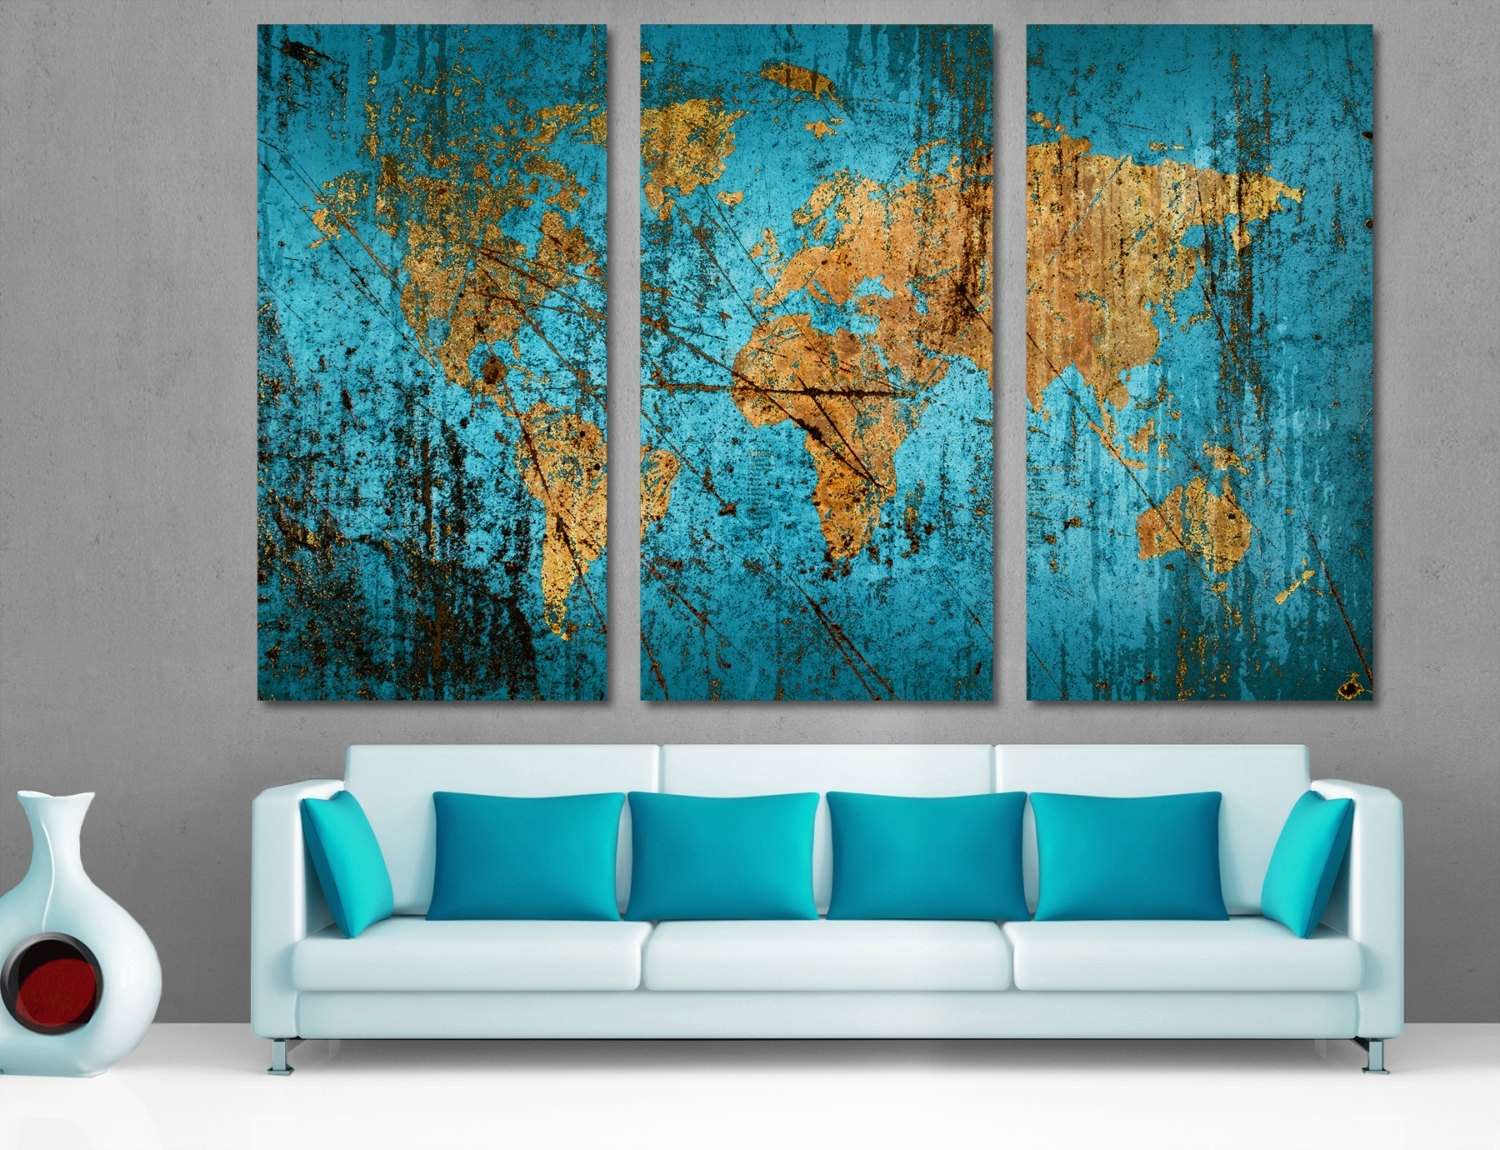 3 Panel Split Canvas Dark Blue World Map Wall Art Canvas. Navy Inside Most Recent Abstract Canvas Wall Art Iii (Gallery 4 of 20)